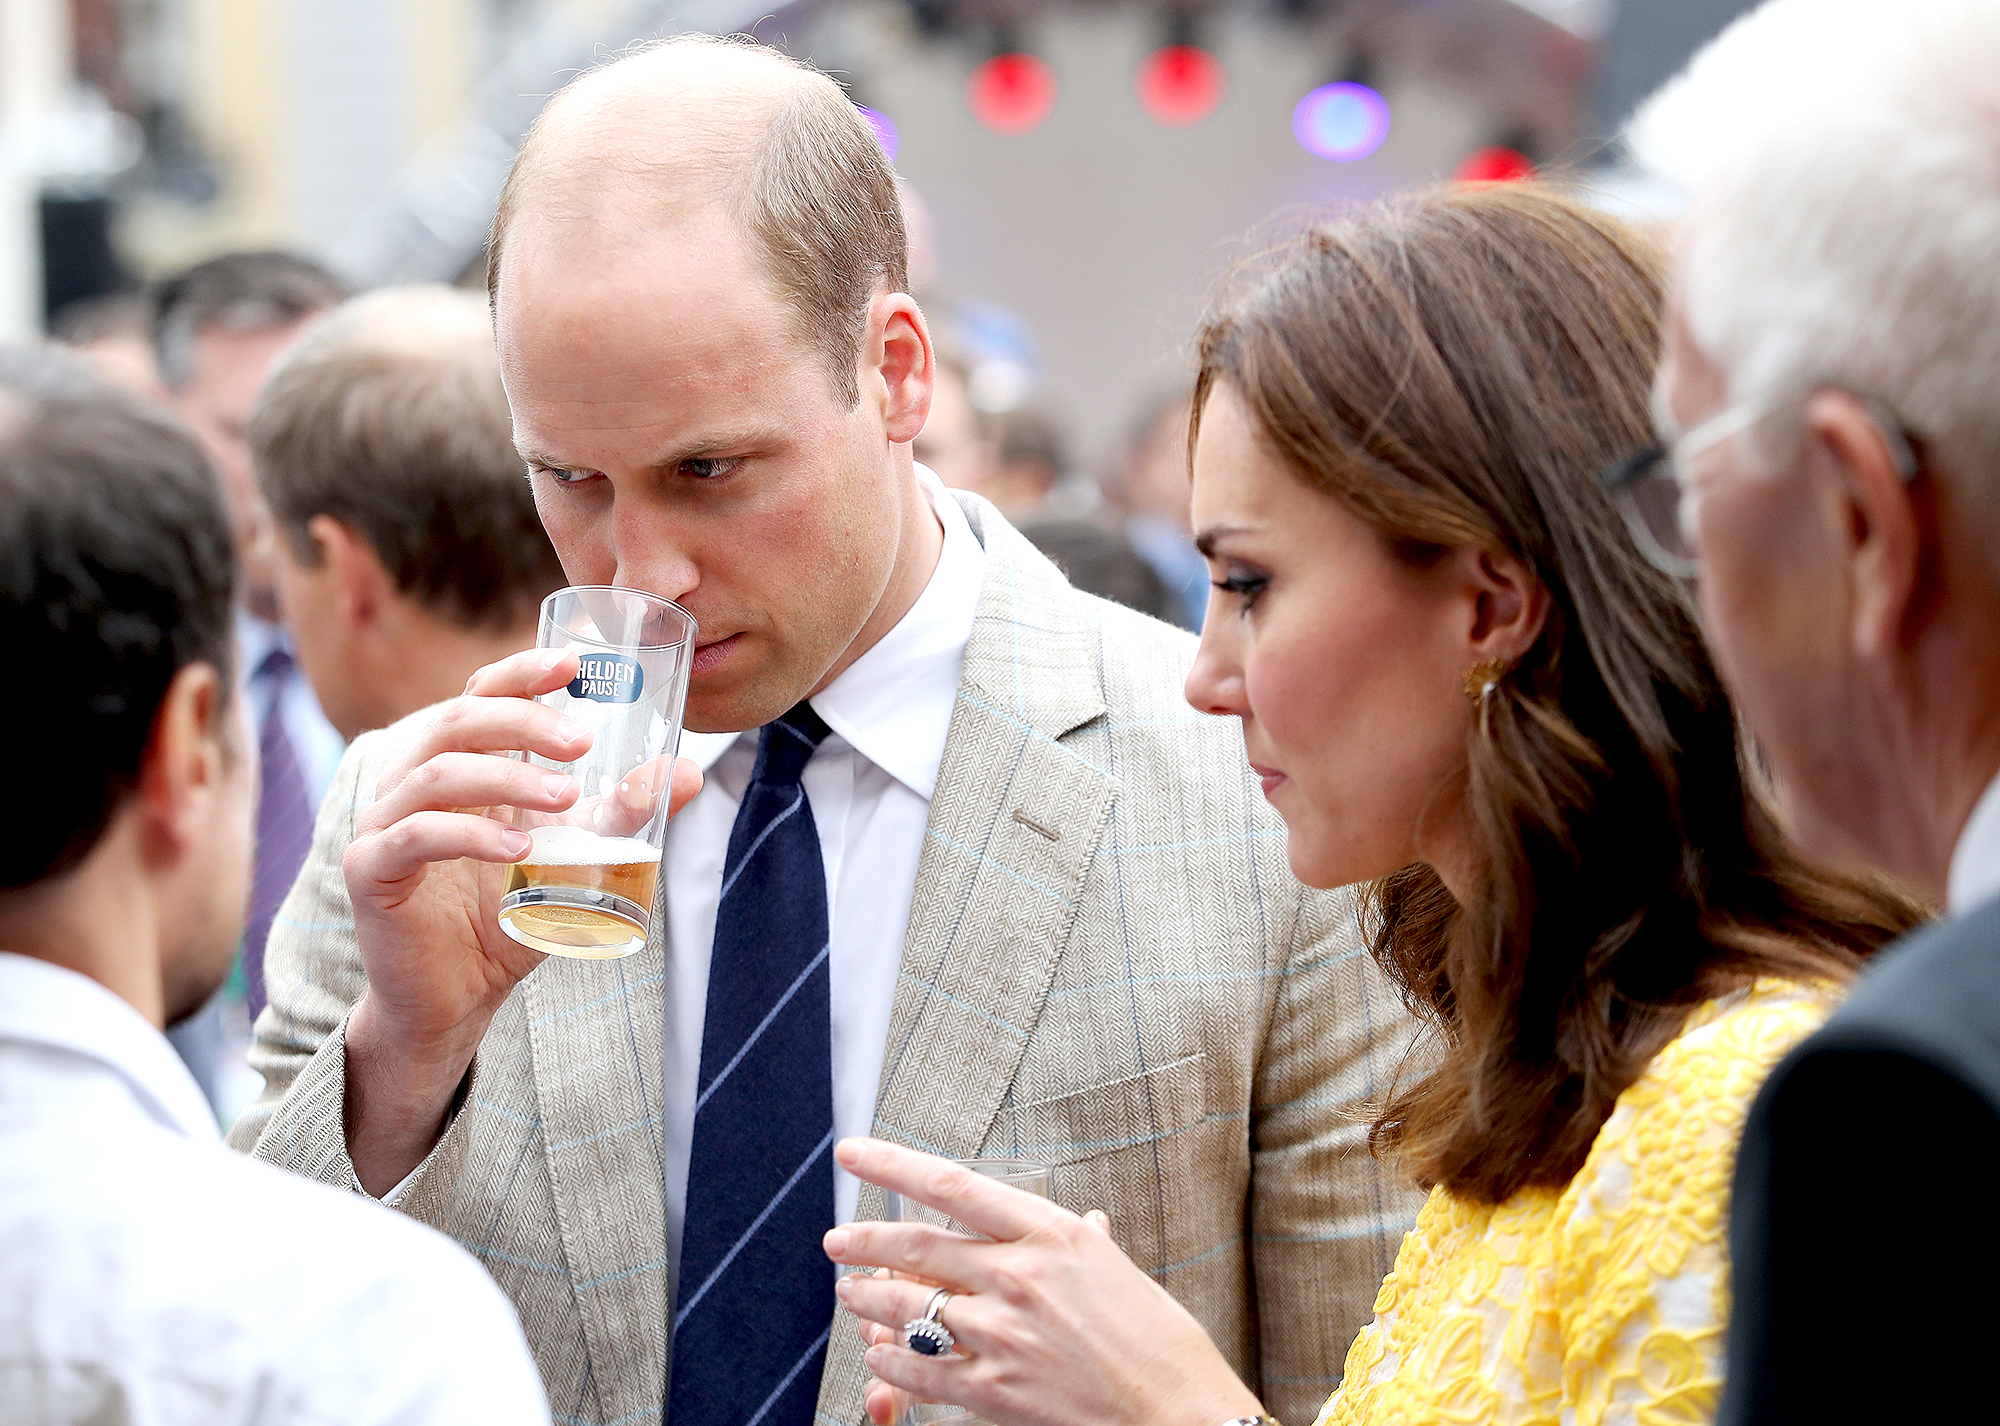 Taking-a-Sniff-prince-william-kate-beer - Ever the curious drinker, the future king of England took a sniff of his beer as Kate looked on during a tour of a traditional German market in Heidelberg, Germany, on July 20, 2017.